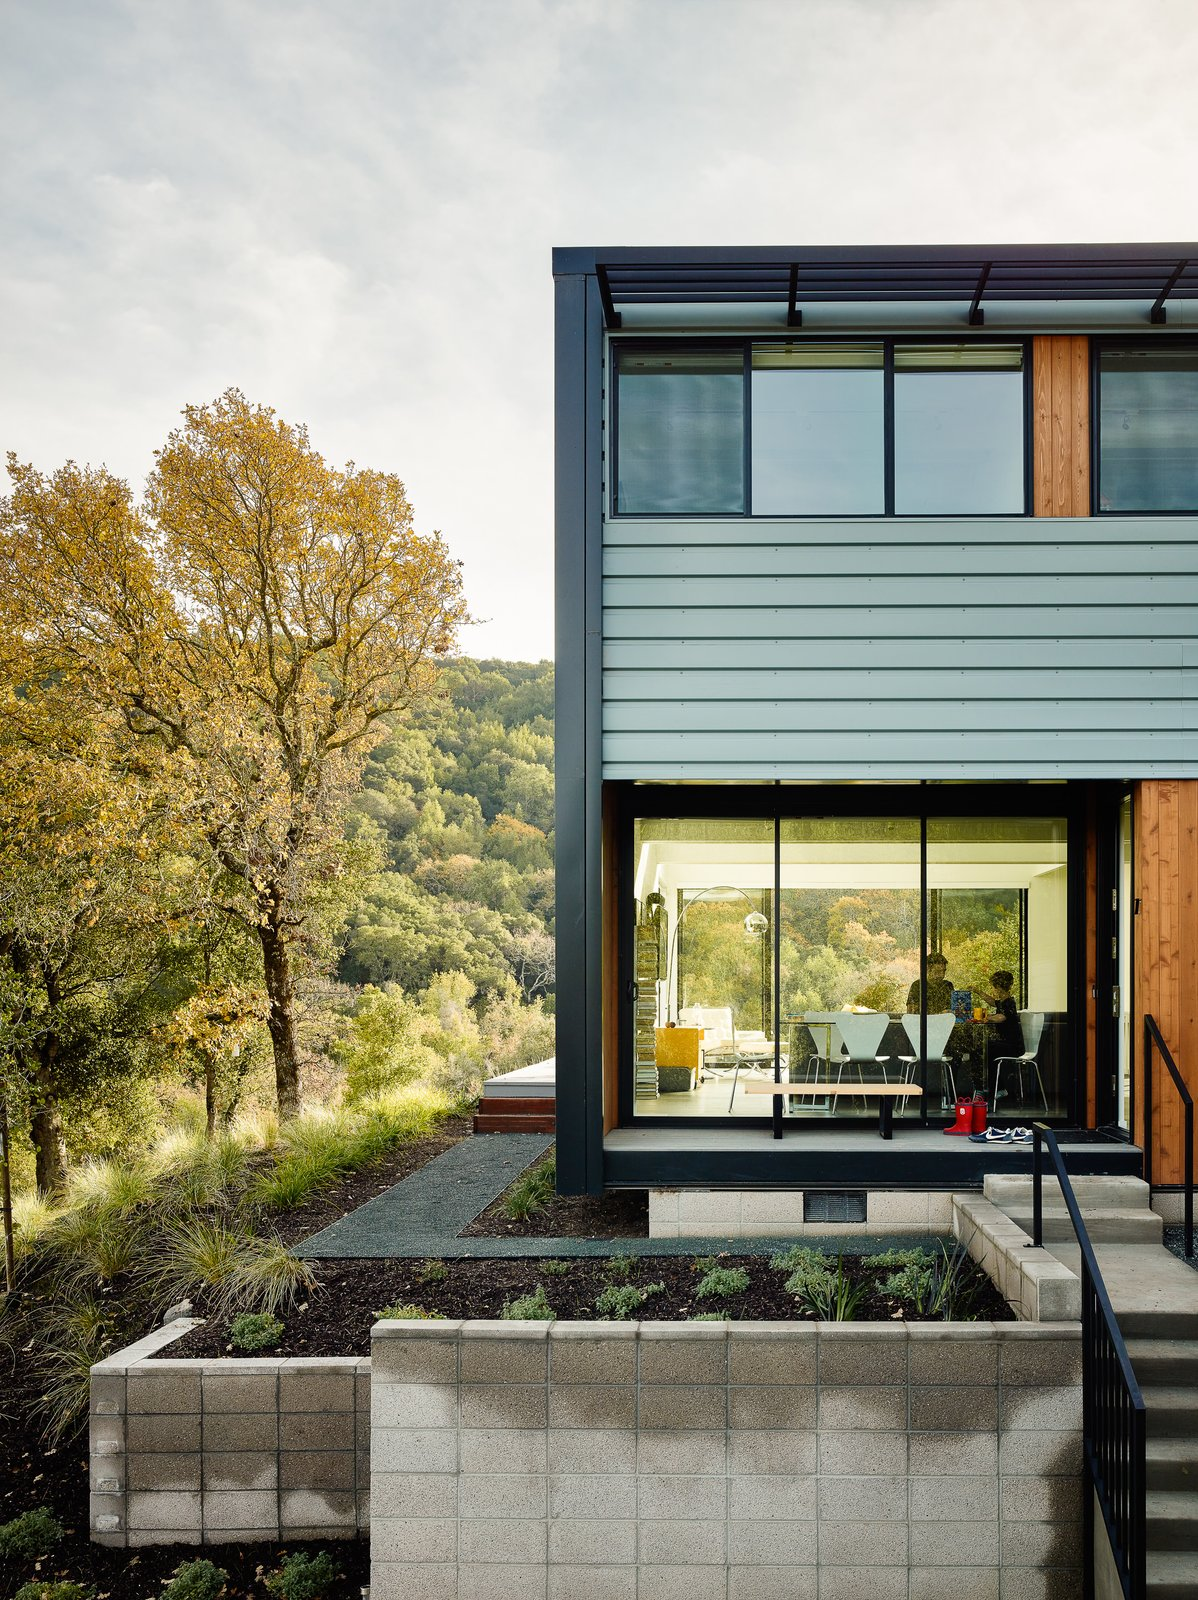 The numerous sliding windows also provide the option of passive cooling and an open-air kitchen, living area, and dining area.